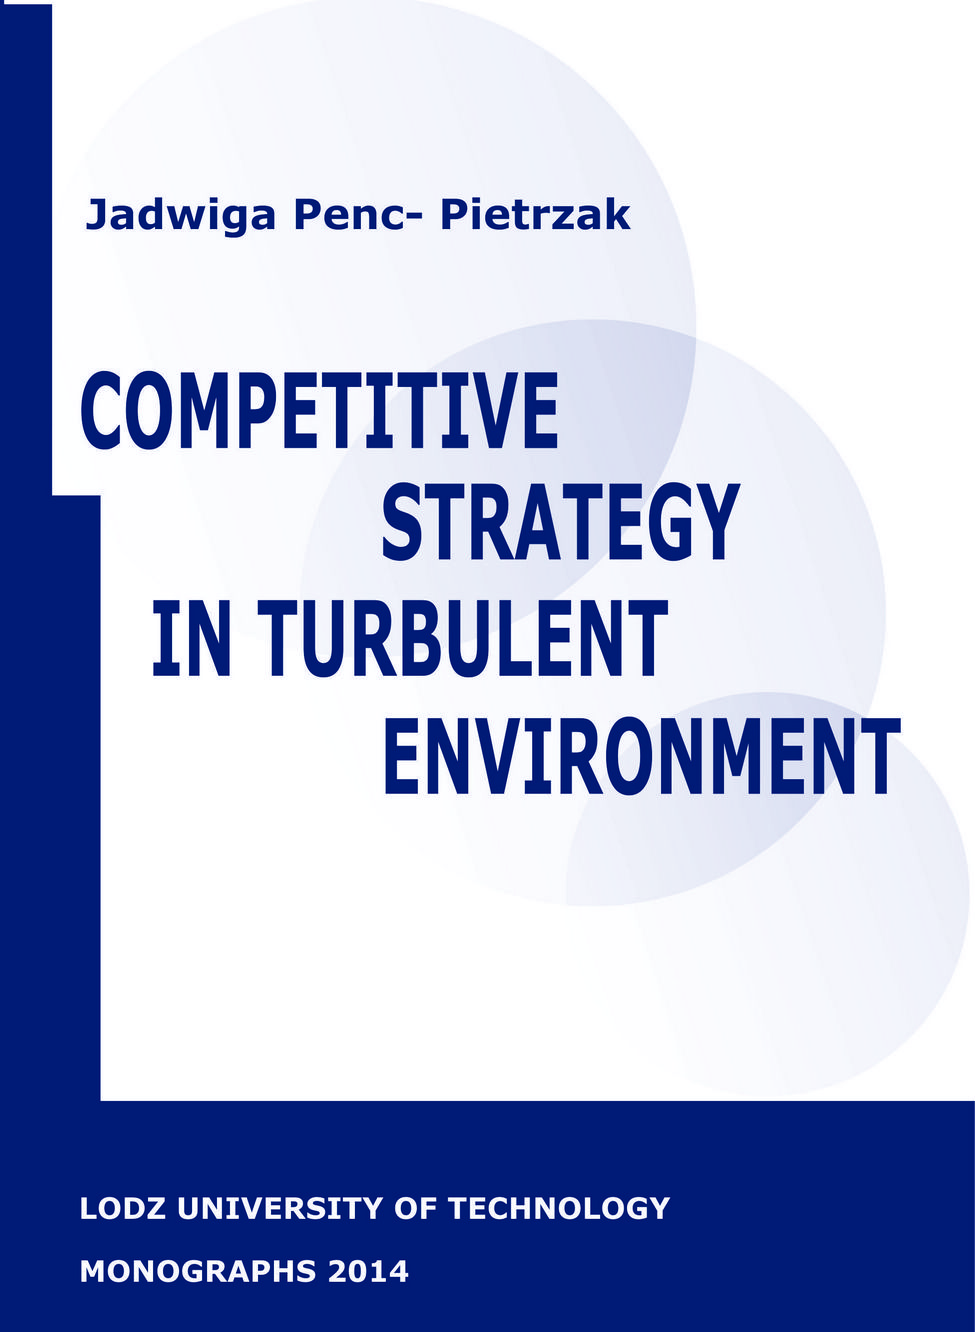 Competitive strategy in turbulent environment